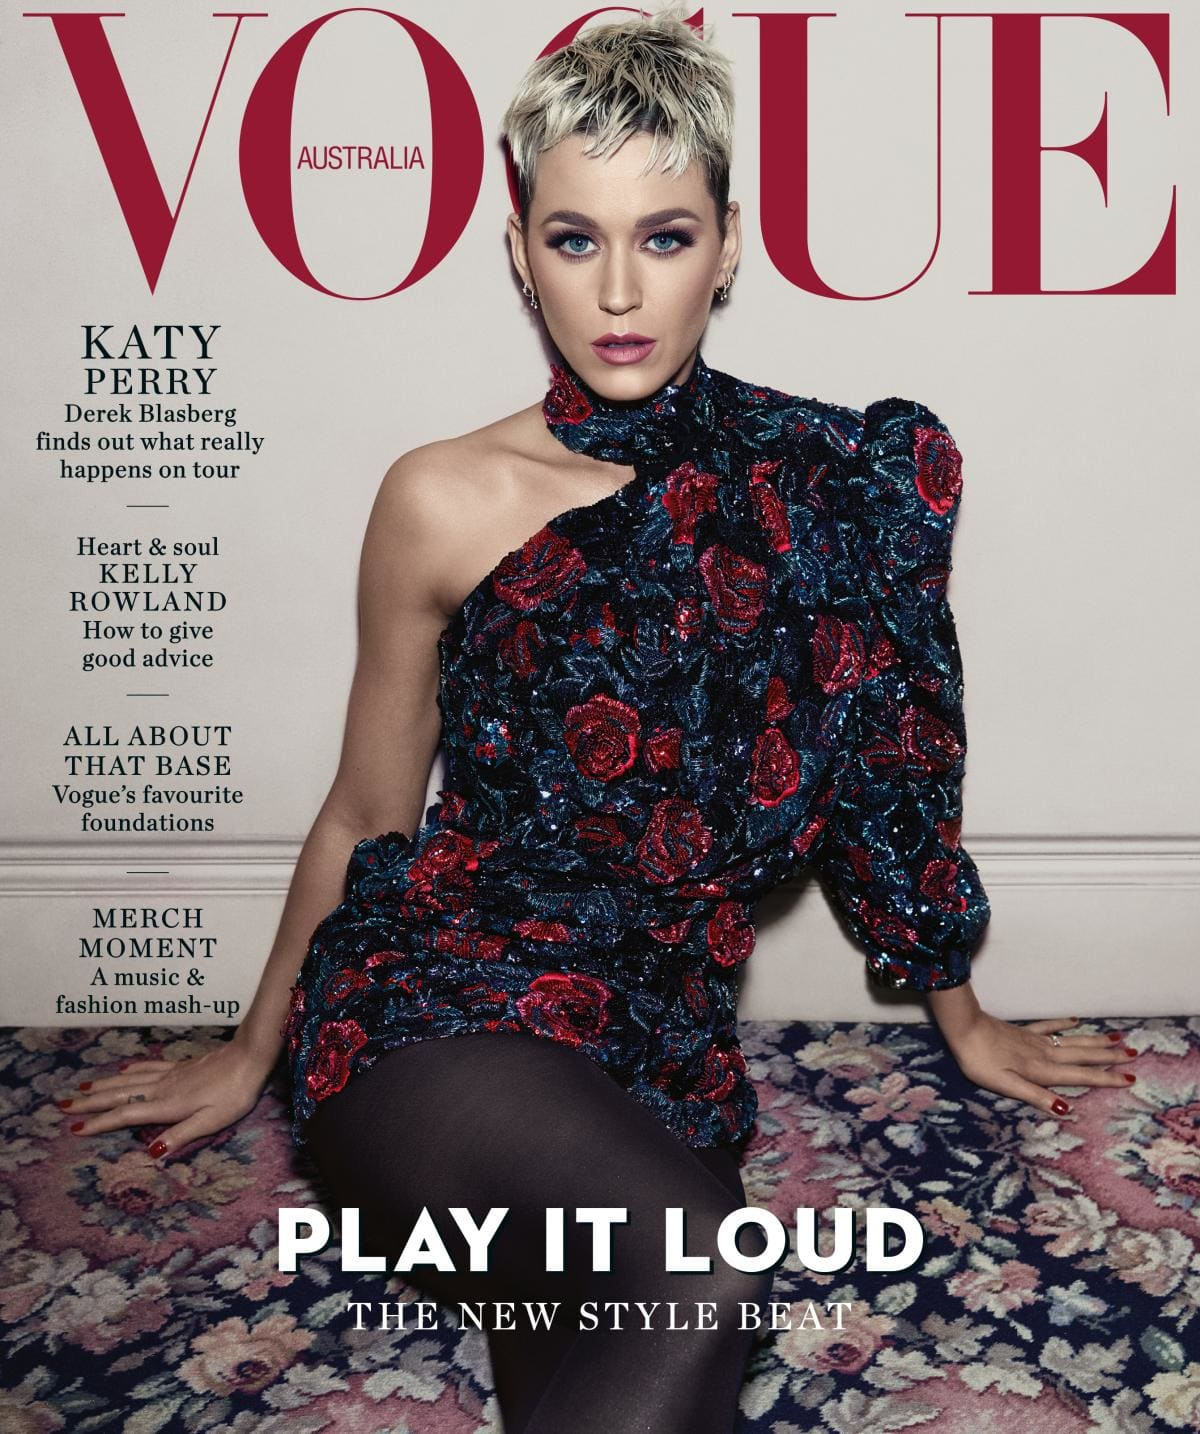 Katy Perry covers Vogue Australia August 2018